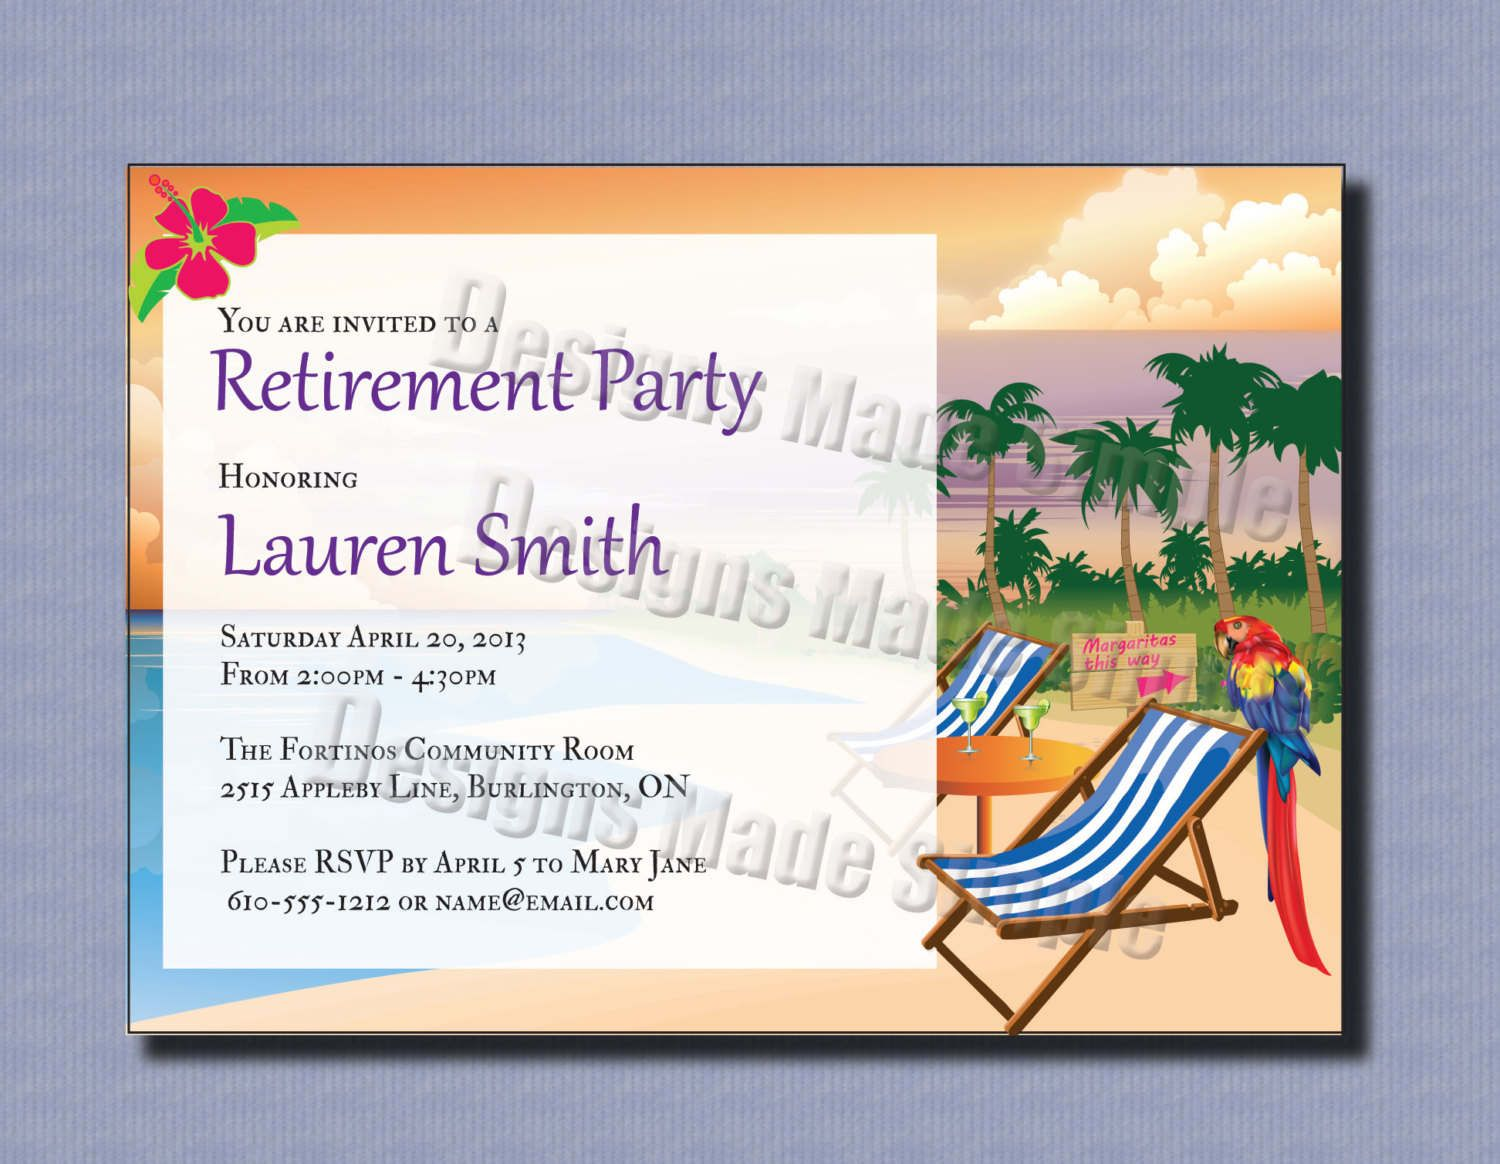 retirement party invitations template 2xizvtxM – Retirement Party Invitation Template Free